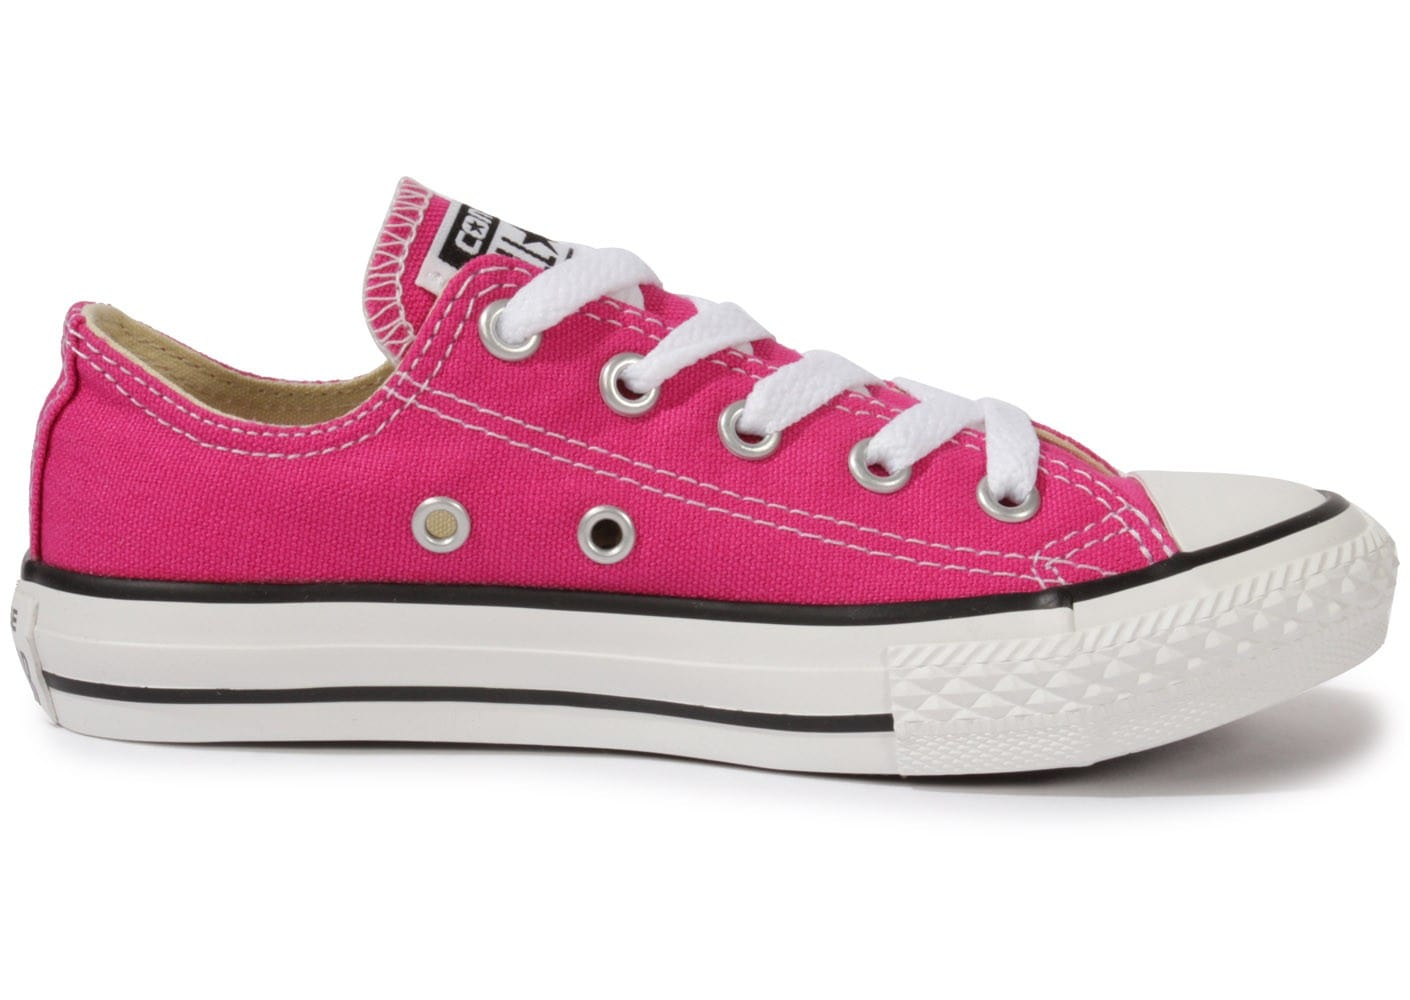 converse chuck taylor all star enfant low rose chaussures chaussures chausport. Black Bedroom Furniture Sets. Home Design Ideas